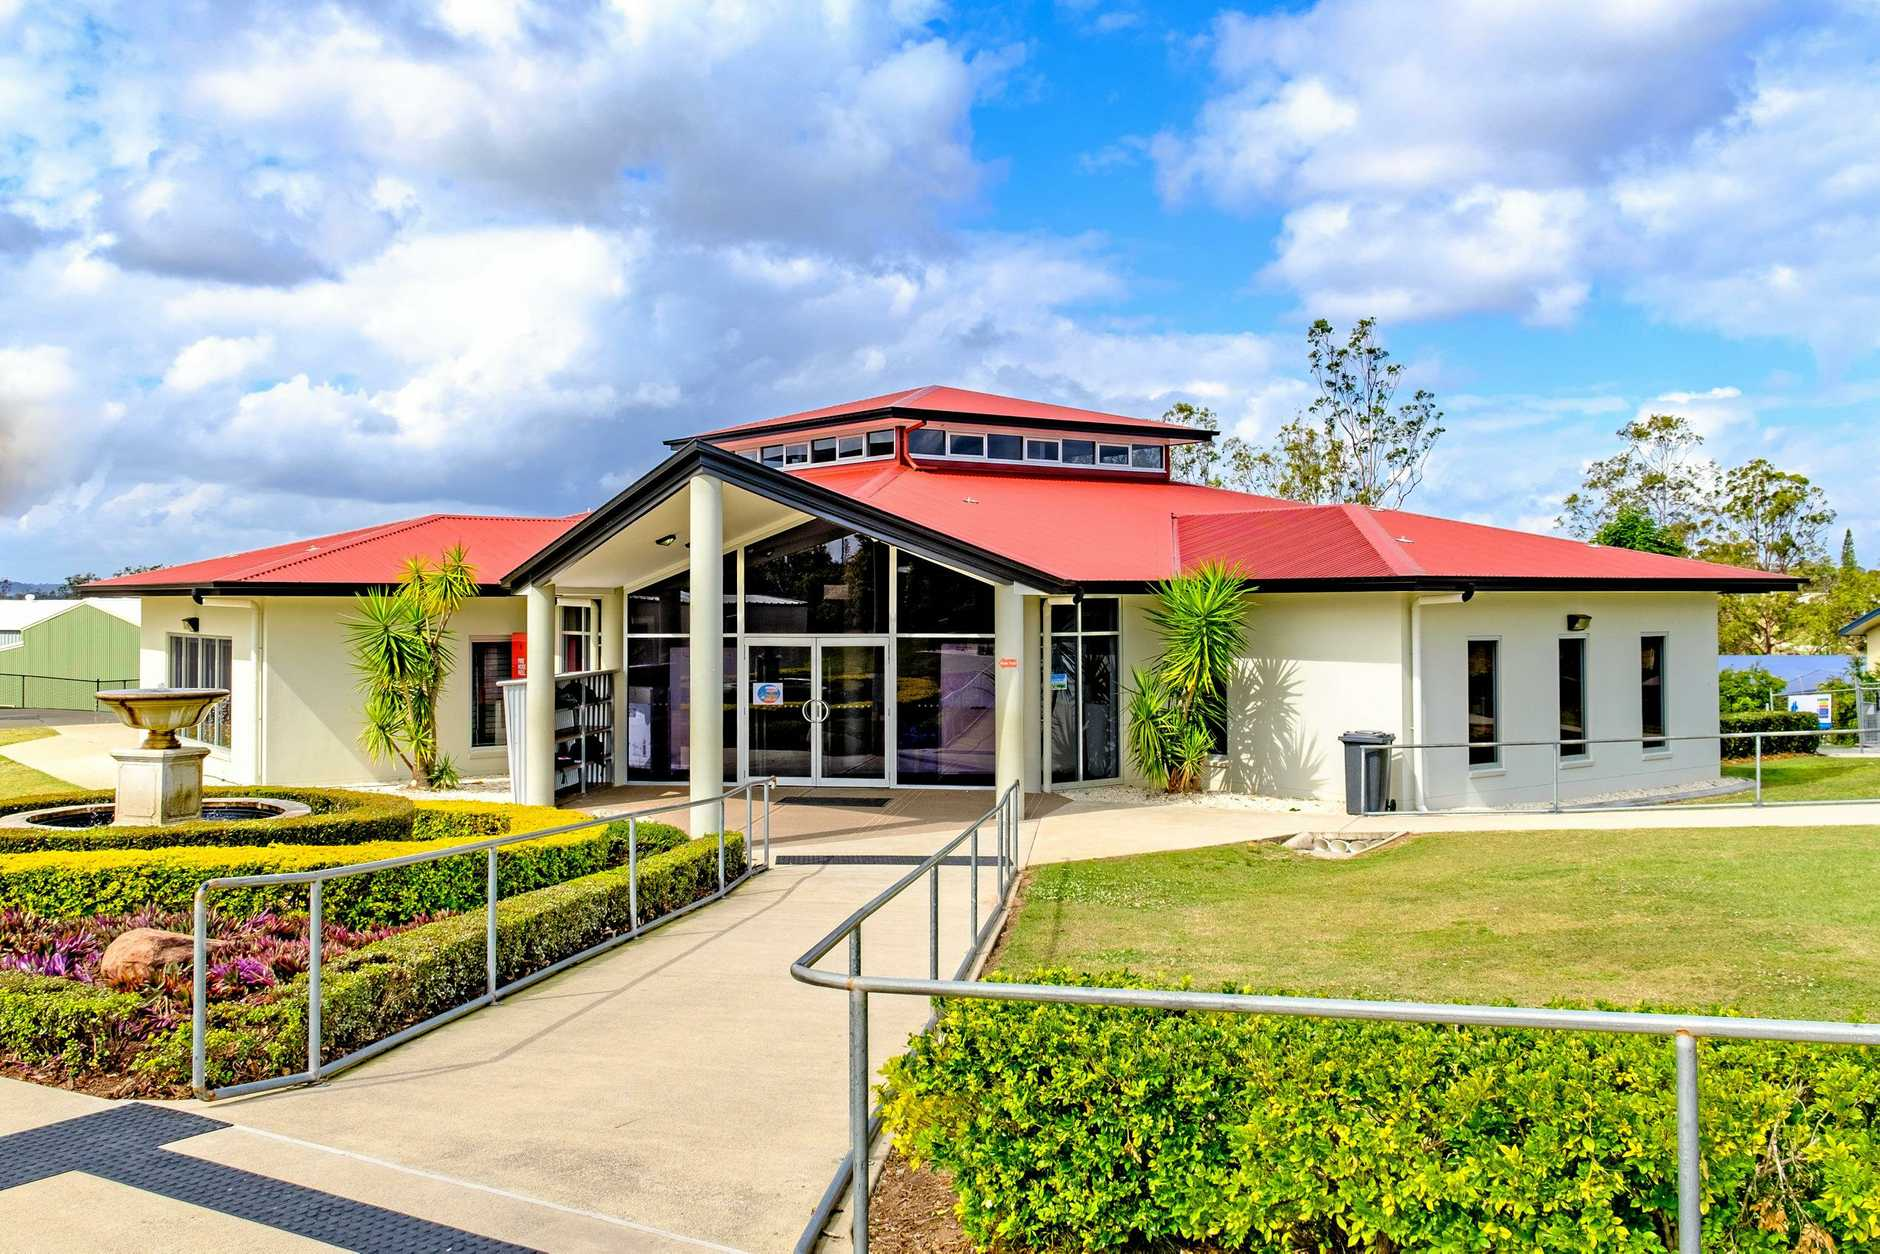 The Victory College library, which was opened in 2010. Gympie region schools have punched way above their weight to make this the best performing regional centre in Queensland when it comes to OP results.